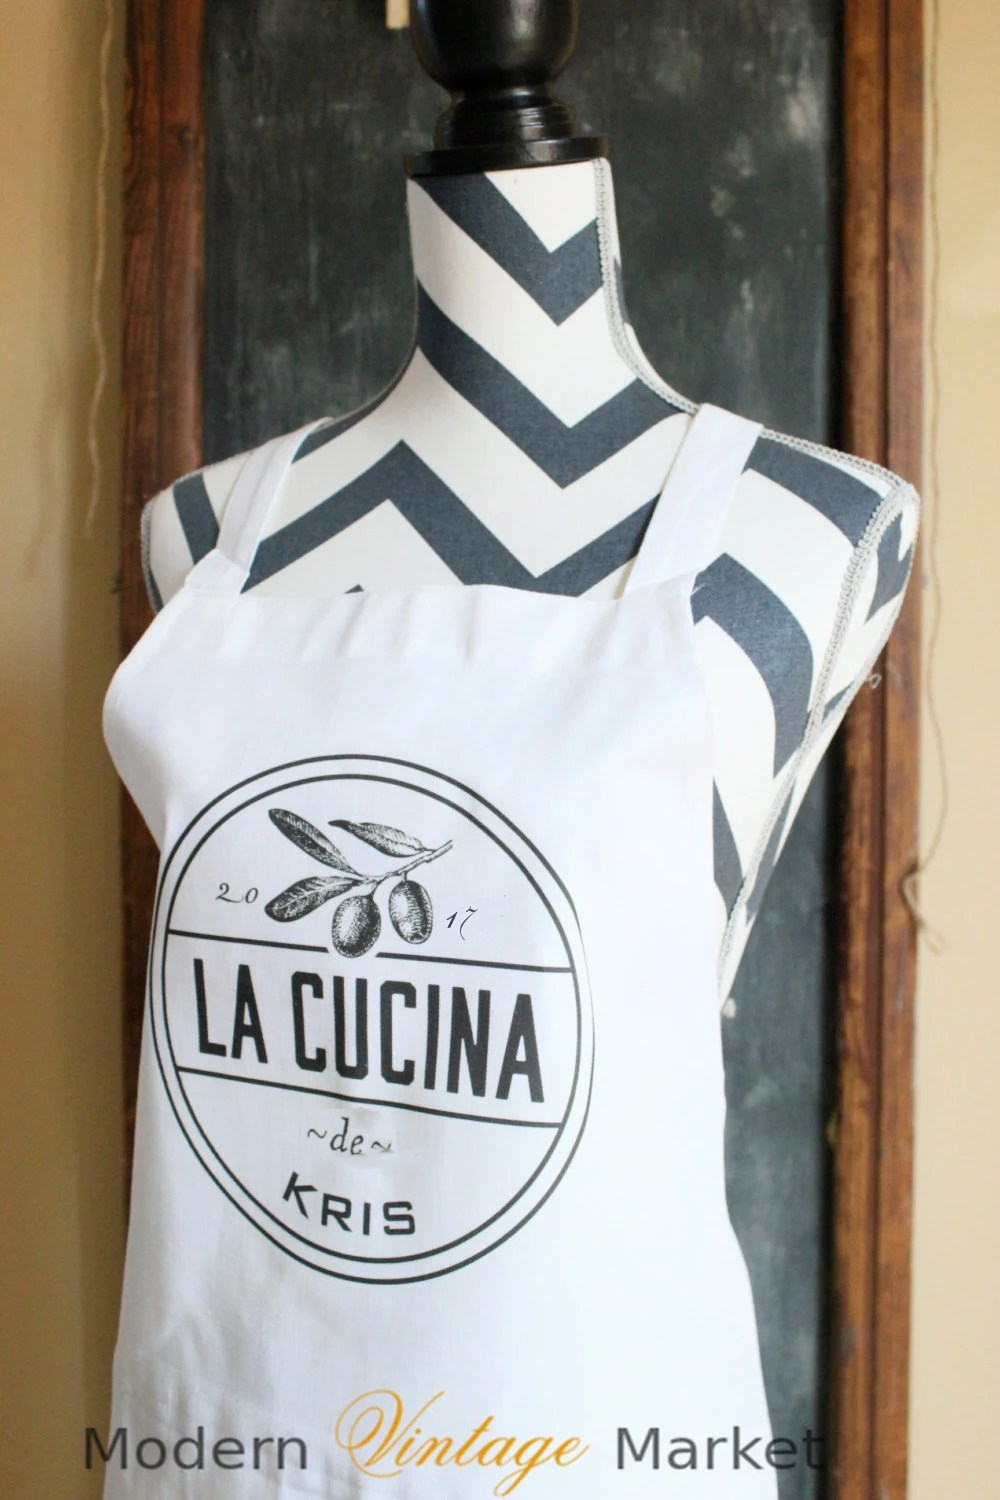 La Cucina Jersey Personalized French Kitchen Apron Custom Apron La Cucina Vintage Style Apron Personalized Gourmet Kitchen Apron Spanish Apron Name Apron